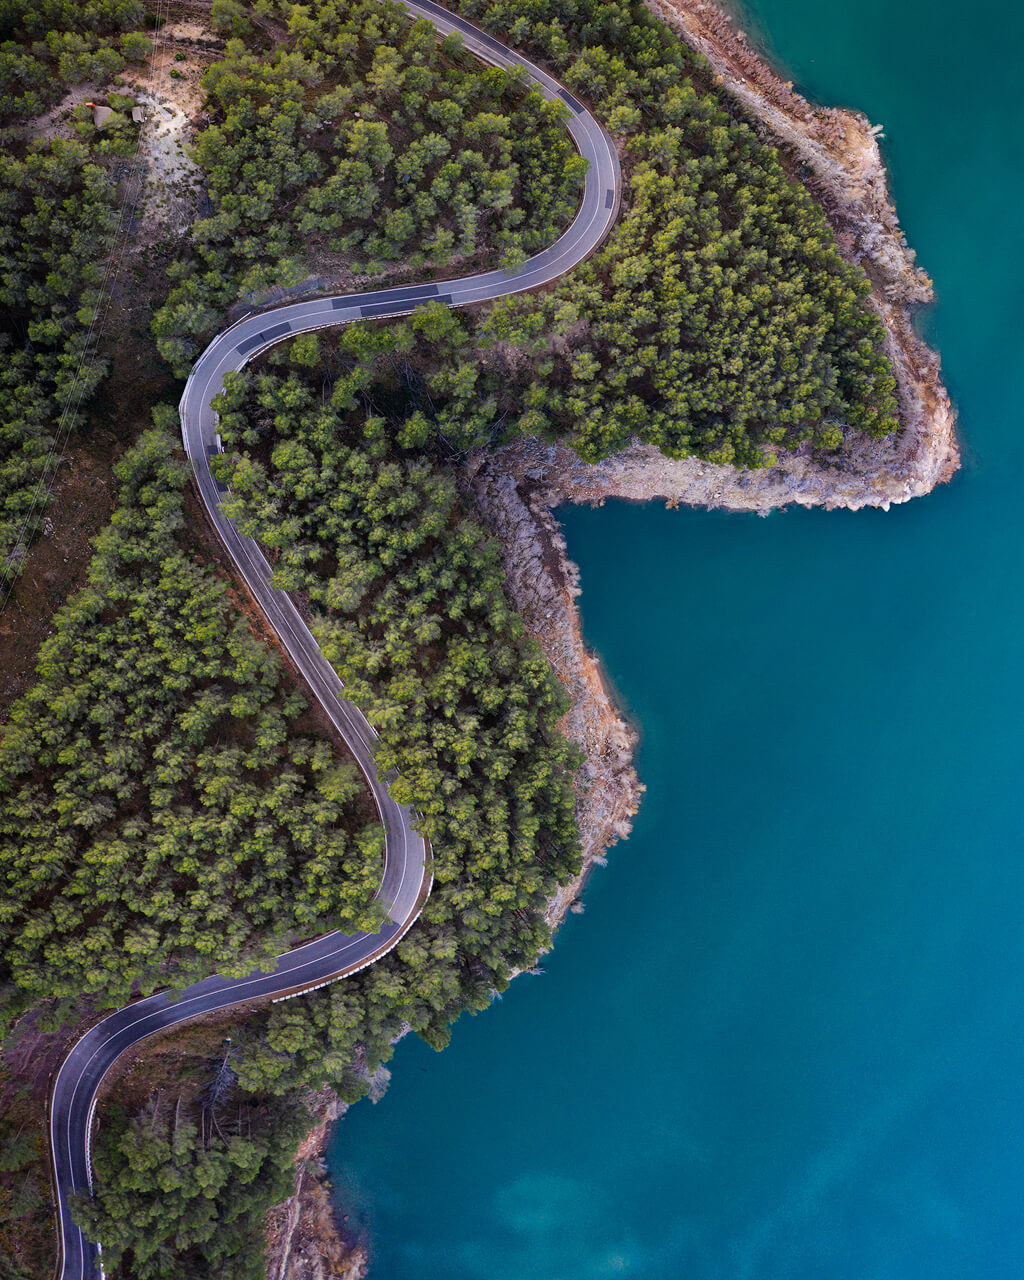 Carretera Serpiente Cerca De Embalse Arenos - DJI Mavic2 Pro